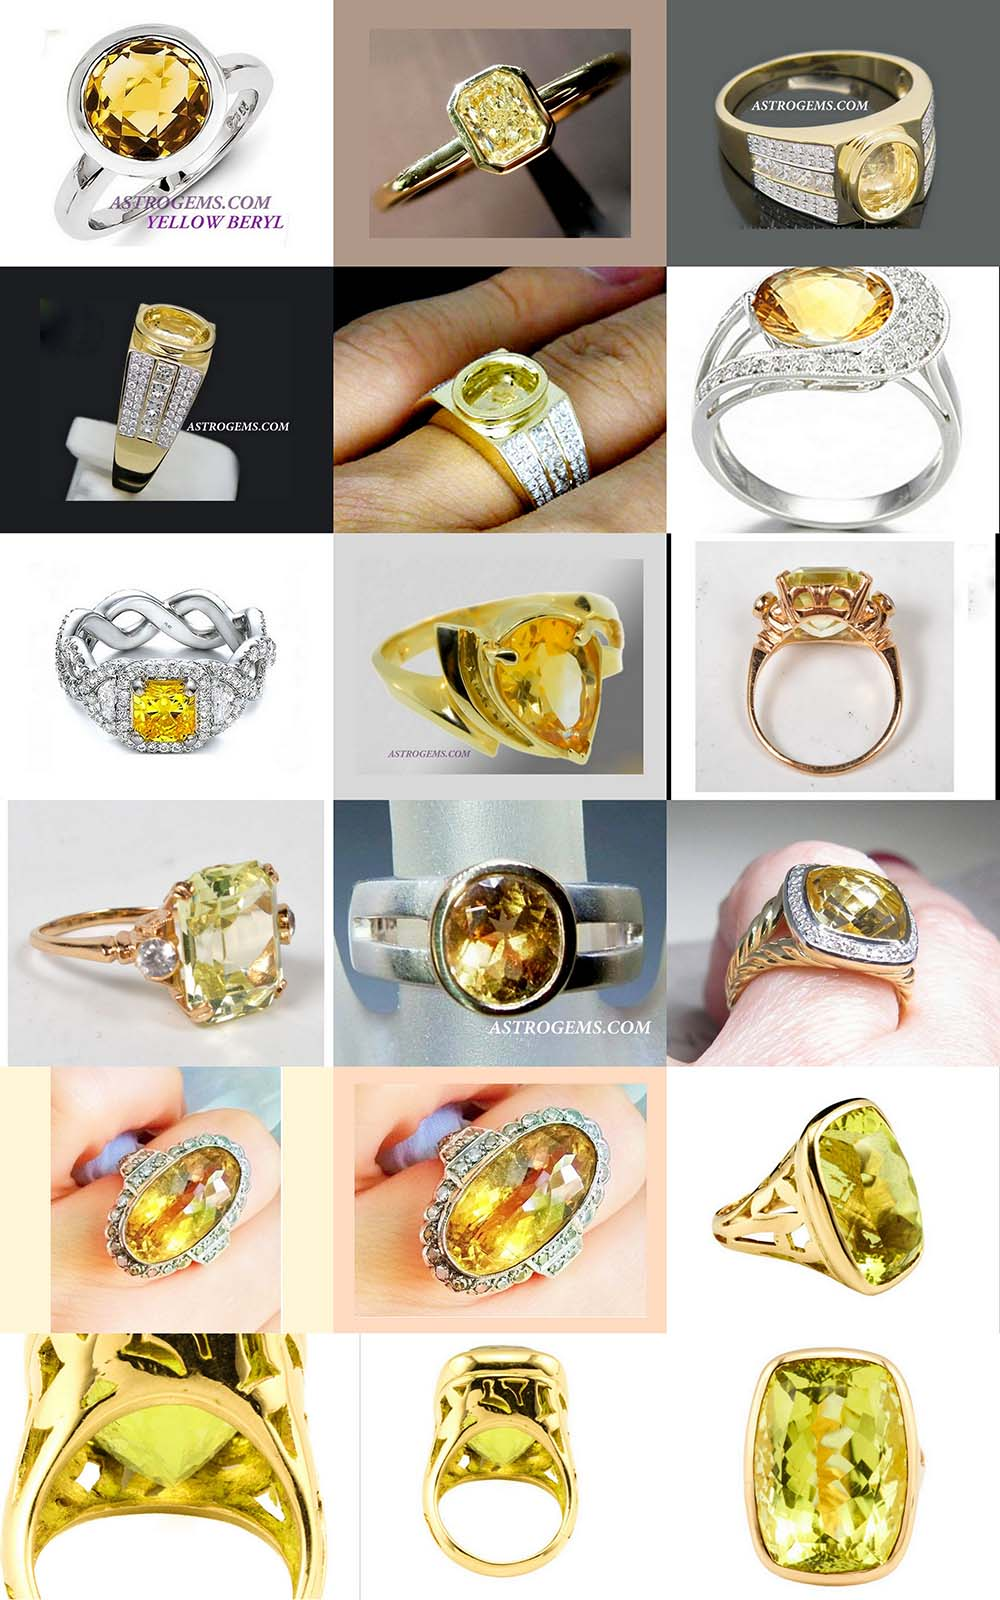 Astrogems can make jyotish astrological Yellow Sapphire rings in any style.